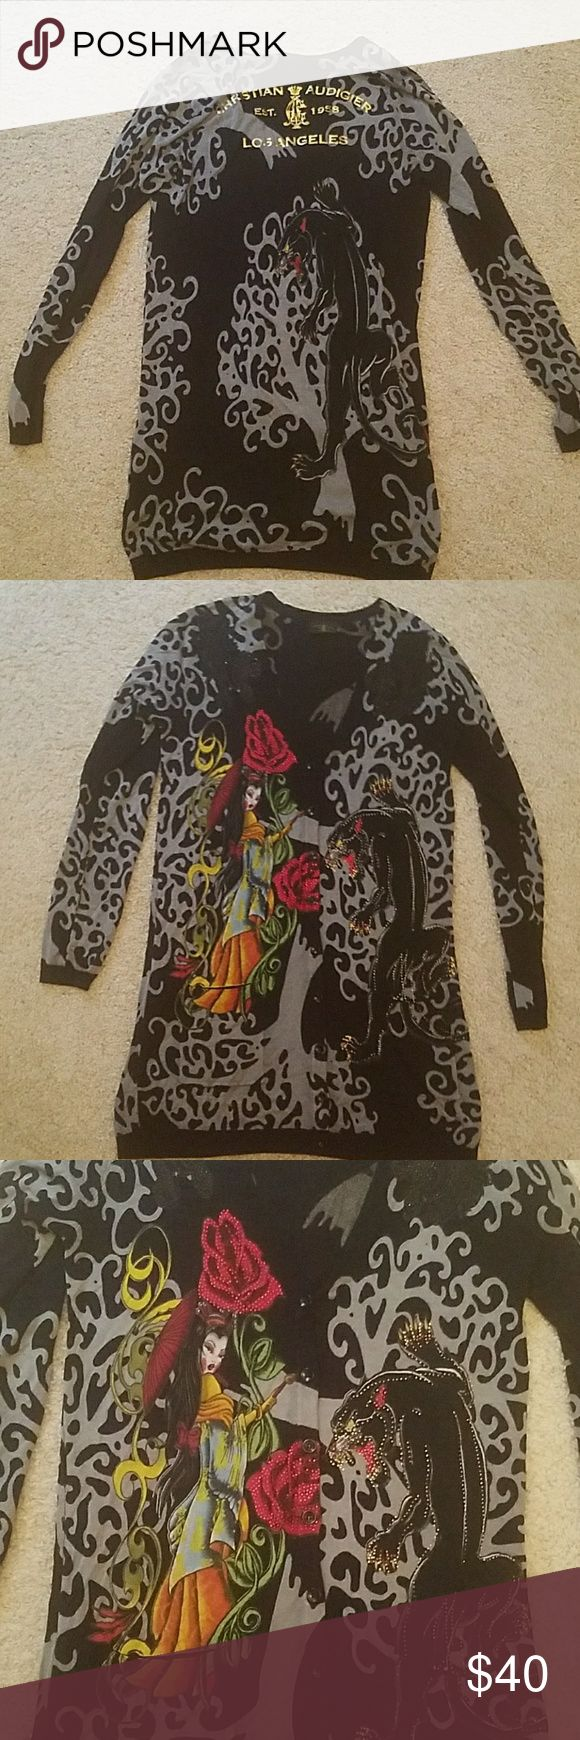 Authentic Christian Audigier panther cardigan Christian Audigier black/gray panther cardigan sweater sz large. Has rhinestones all over. Excellent condition. Very unique. Check out my closet for matching rain boots. Christian Audigier Sweaters Cardigans